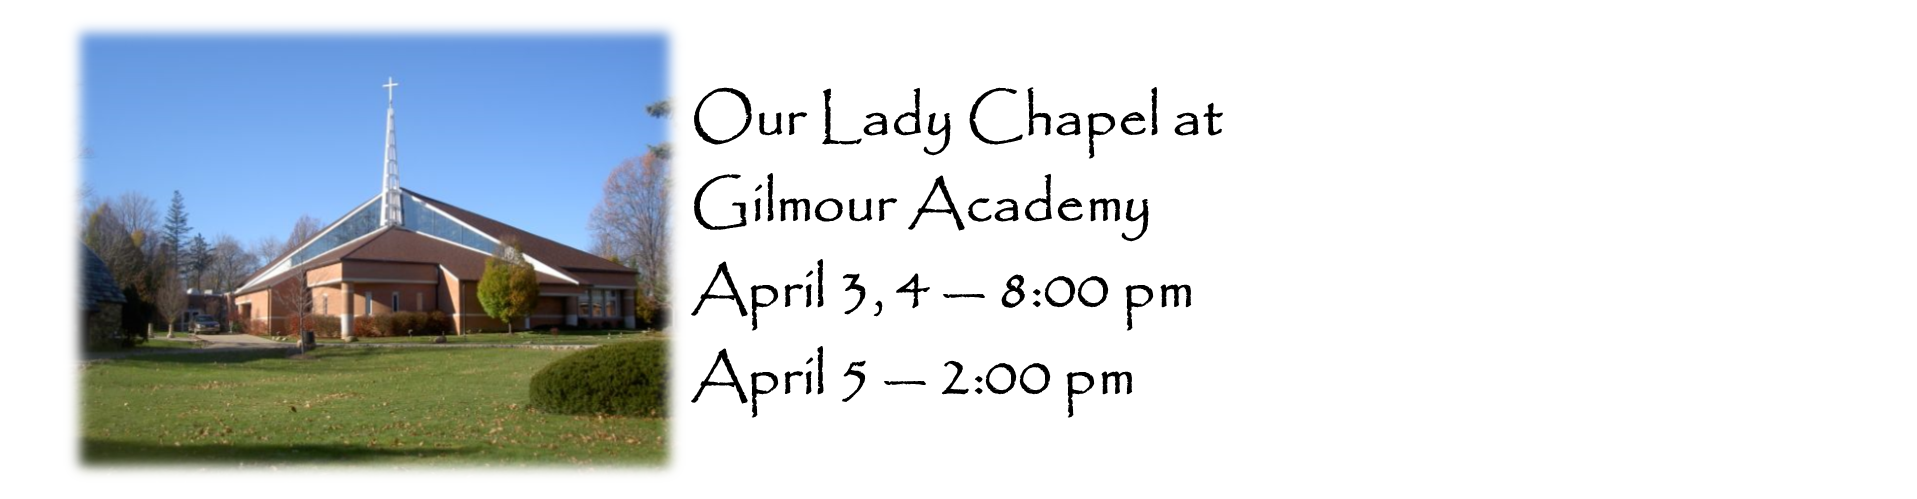 Our Lady Chapel Gilmour Academy